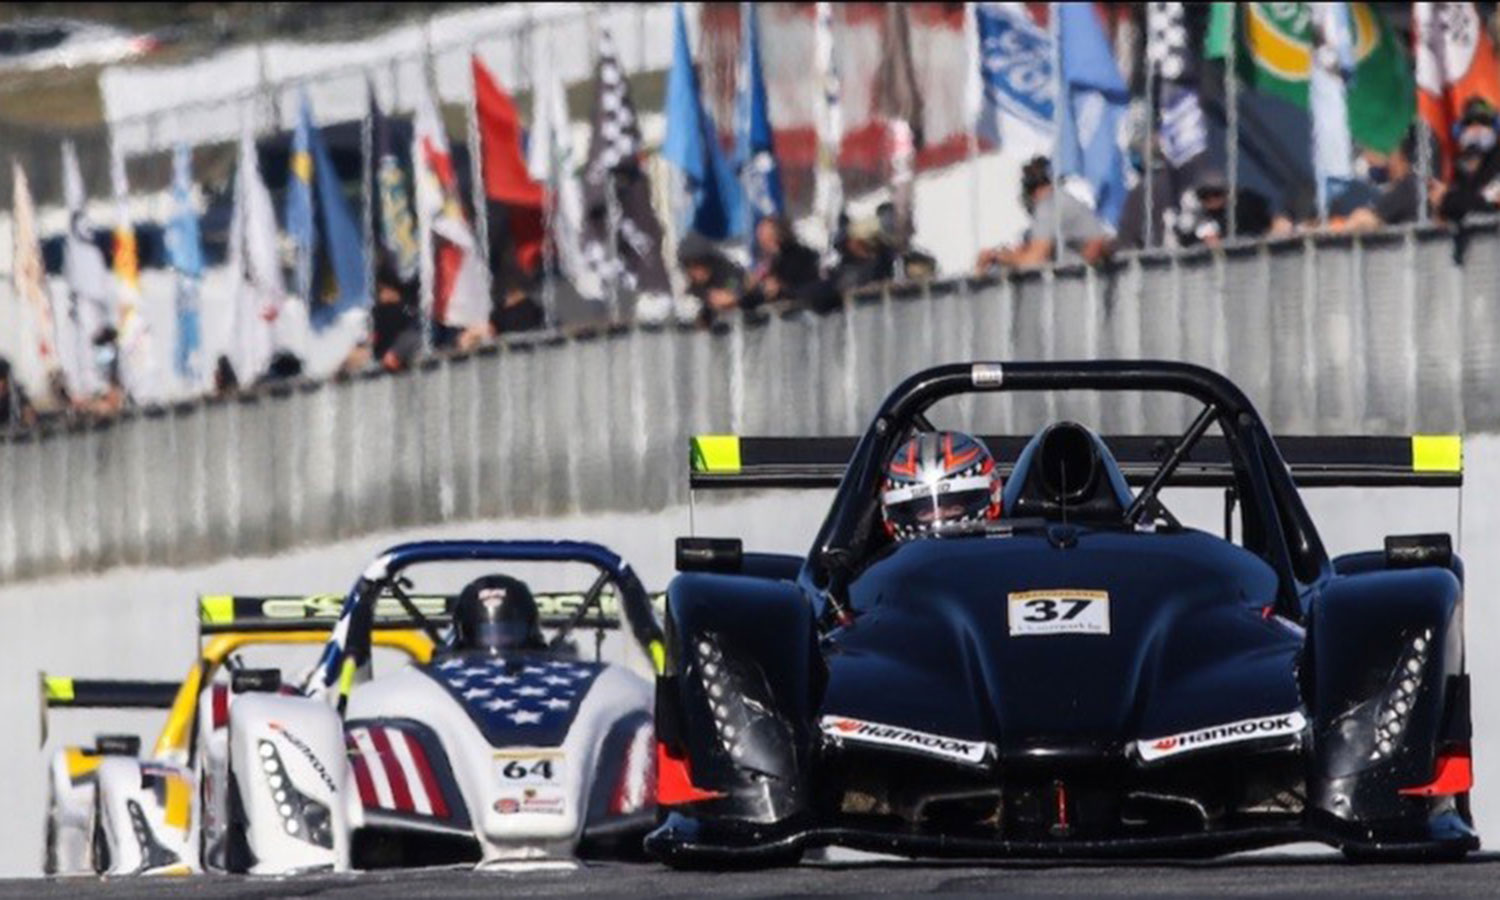 Registration for the 2021 Blue Marble Radical Cup is now open